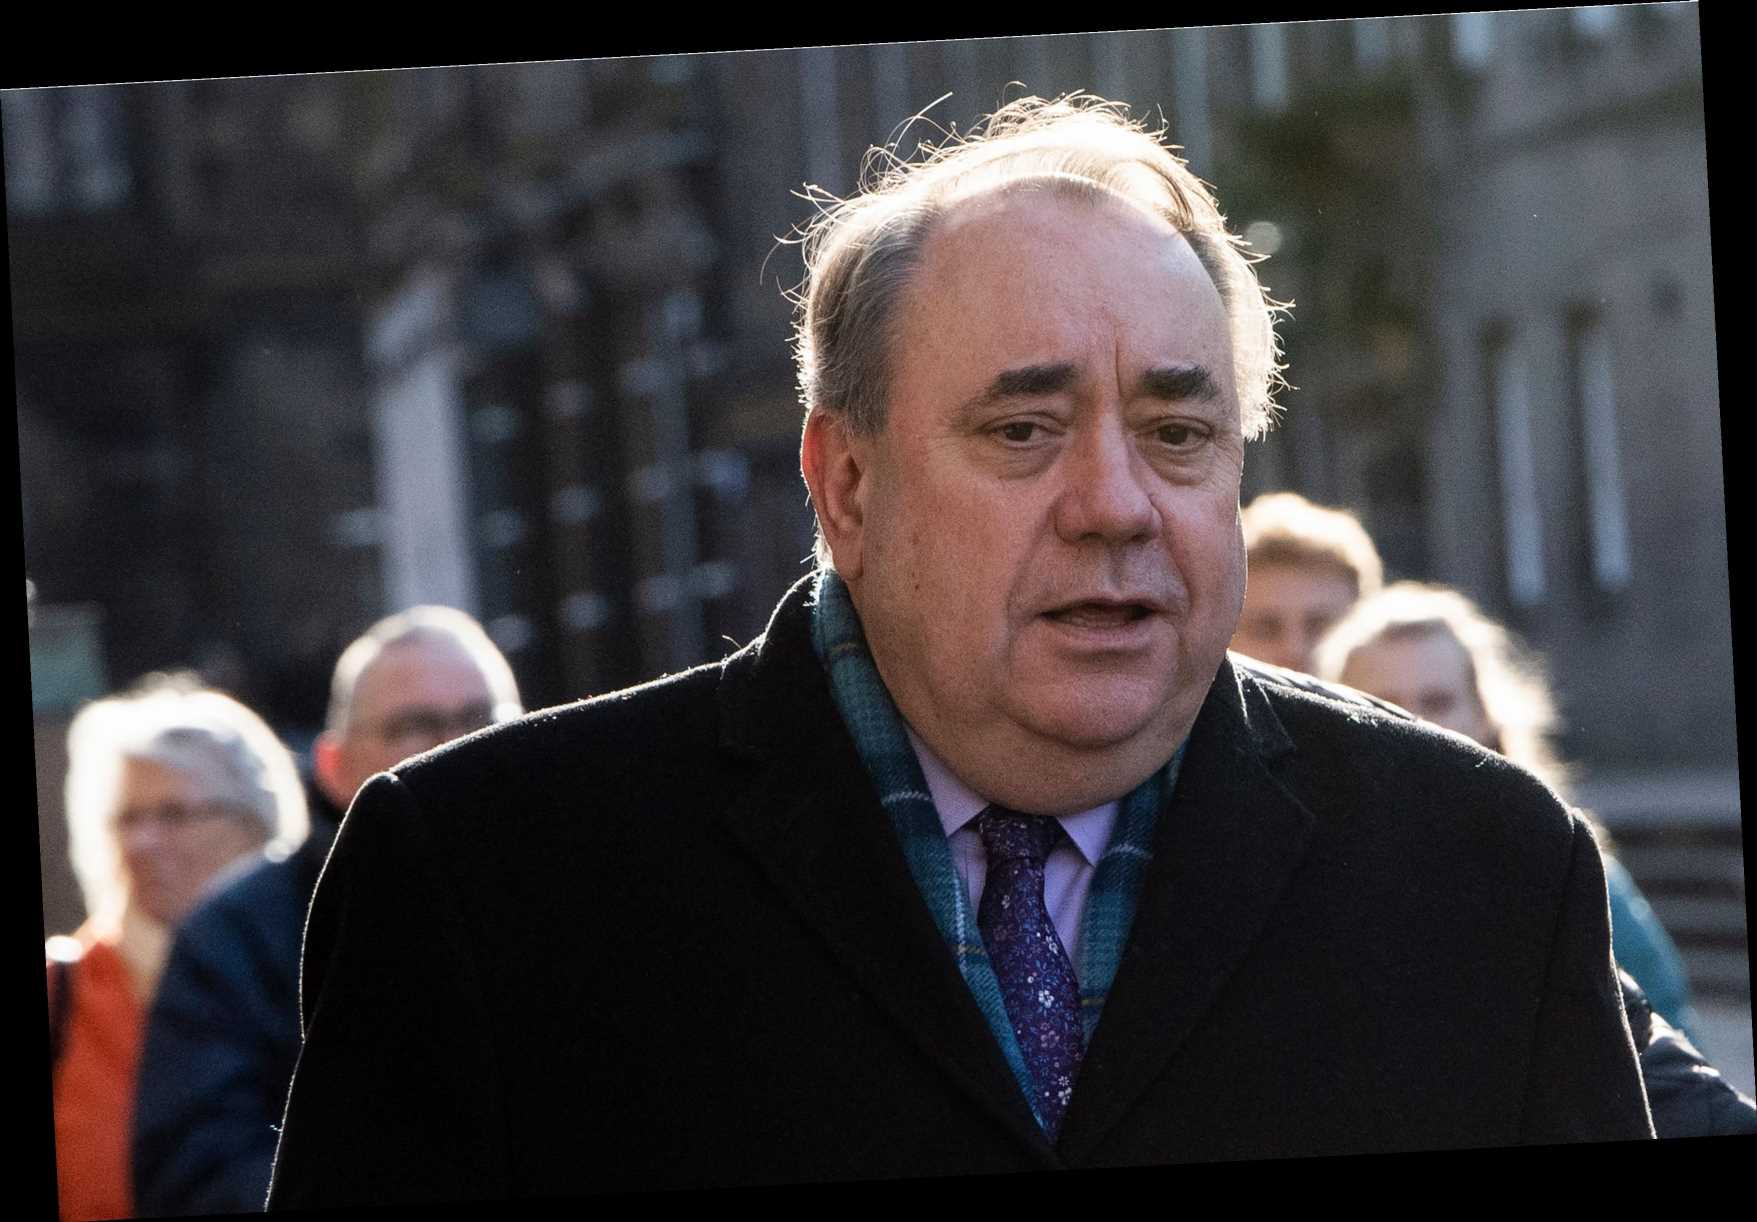 Alex Salmond asked 'do you think it's OK to stroke women's faces?' as Alba Party launch dogged by questions over conduct